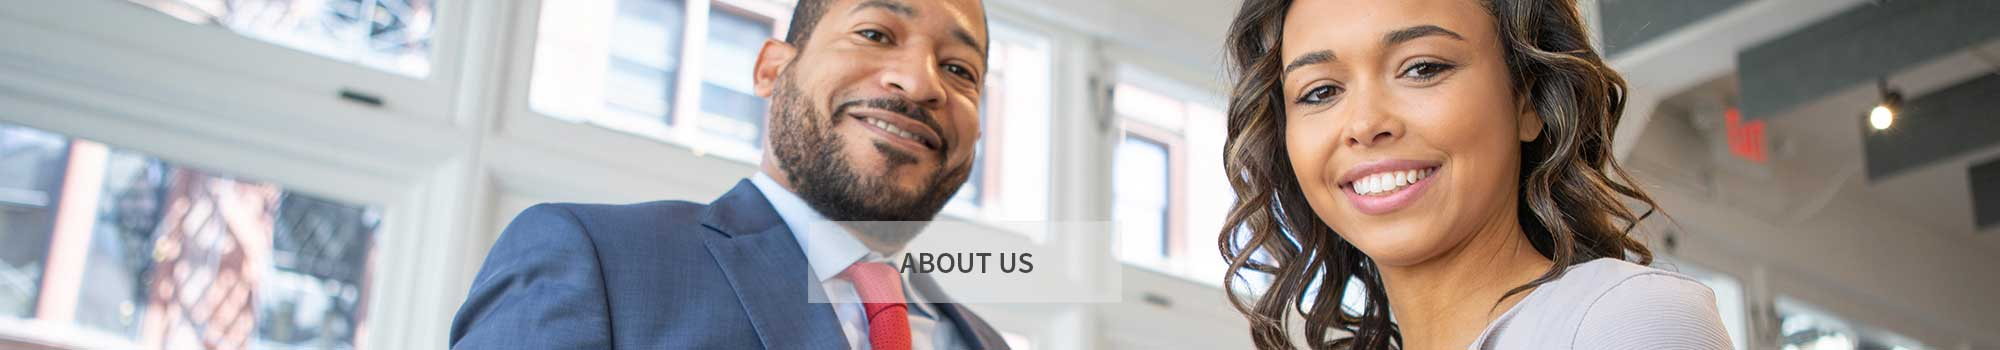 About Lytle Associates - Personal Insurance, Group benefits, Business Insurance